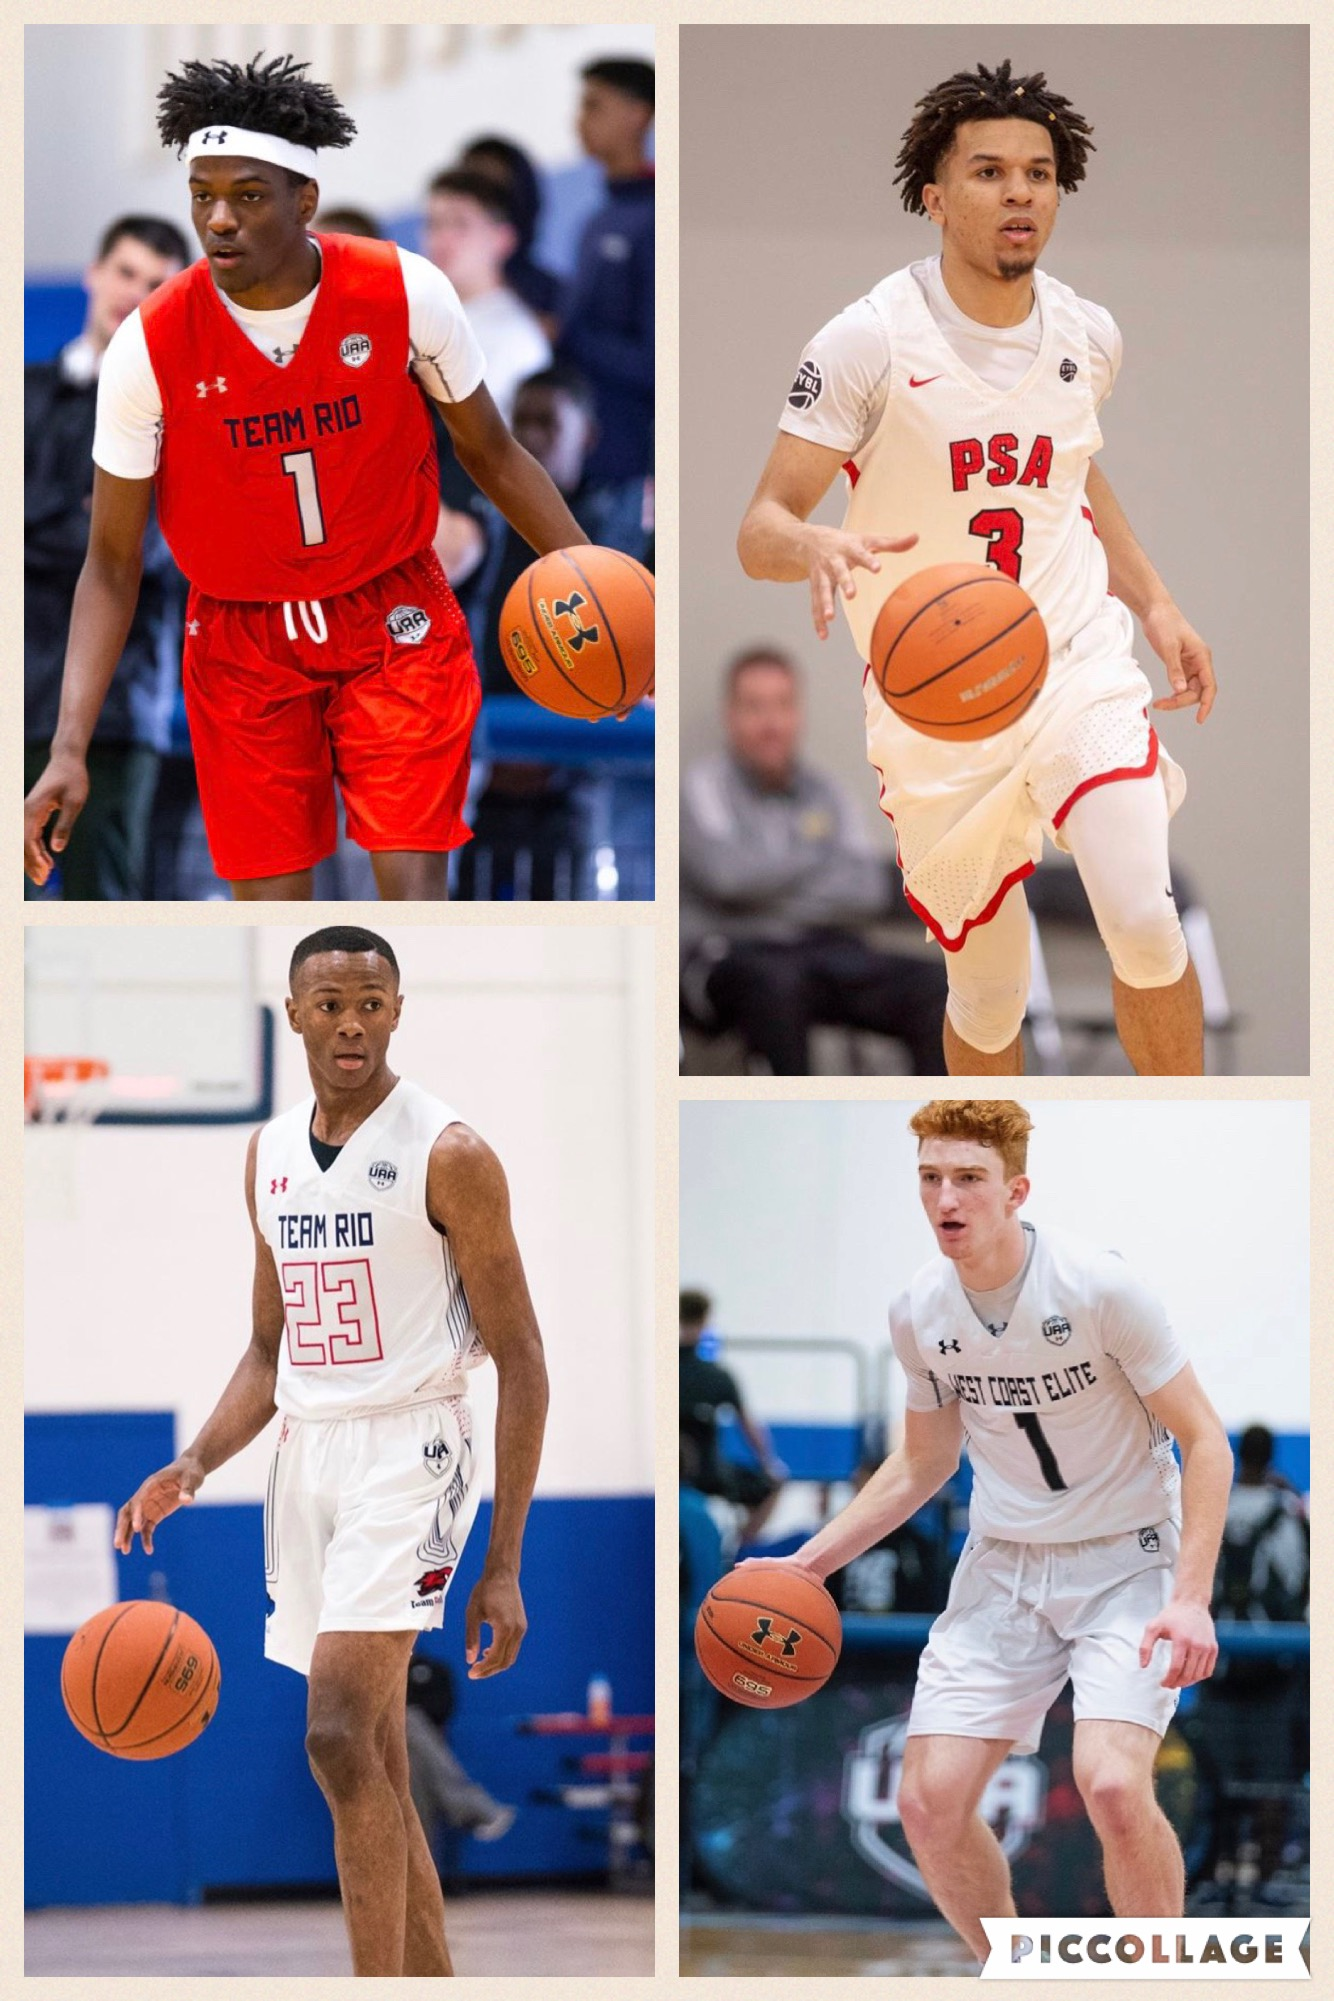 2019 McDonalds All American Game: Players to Watch